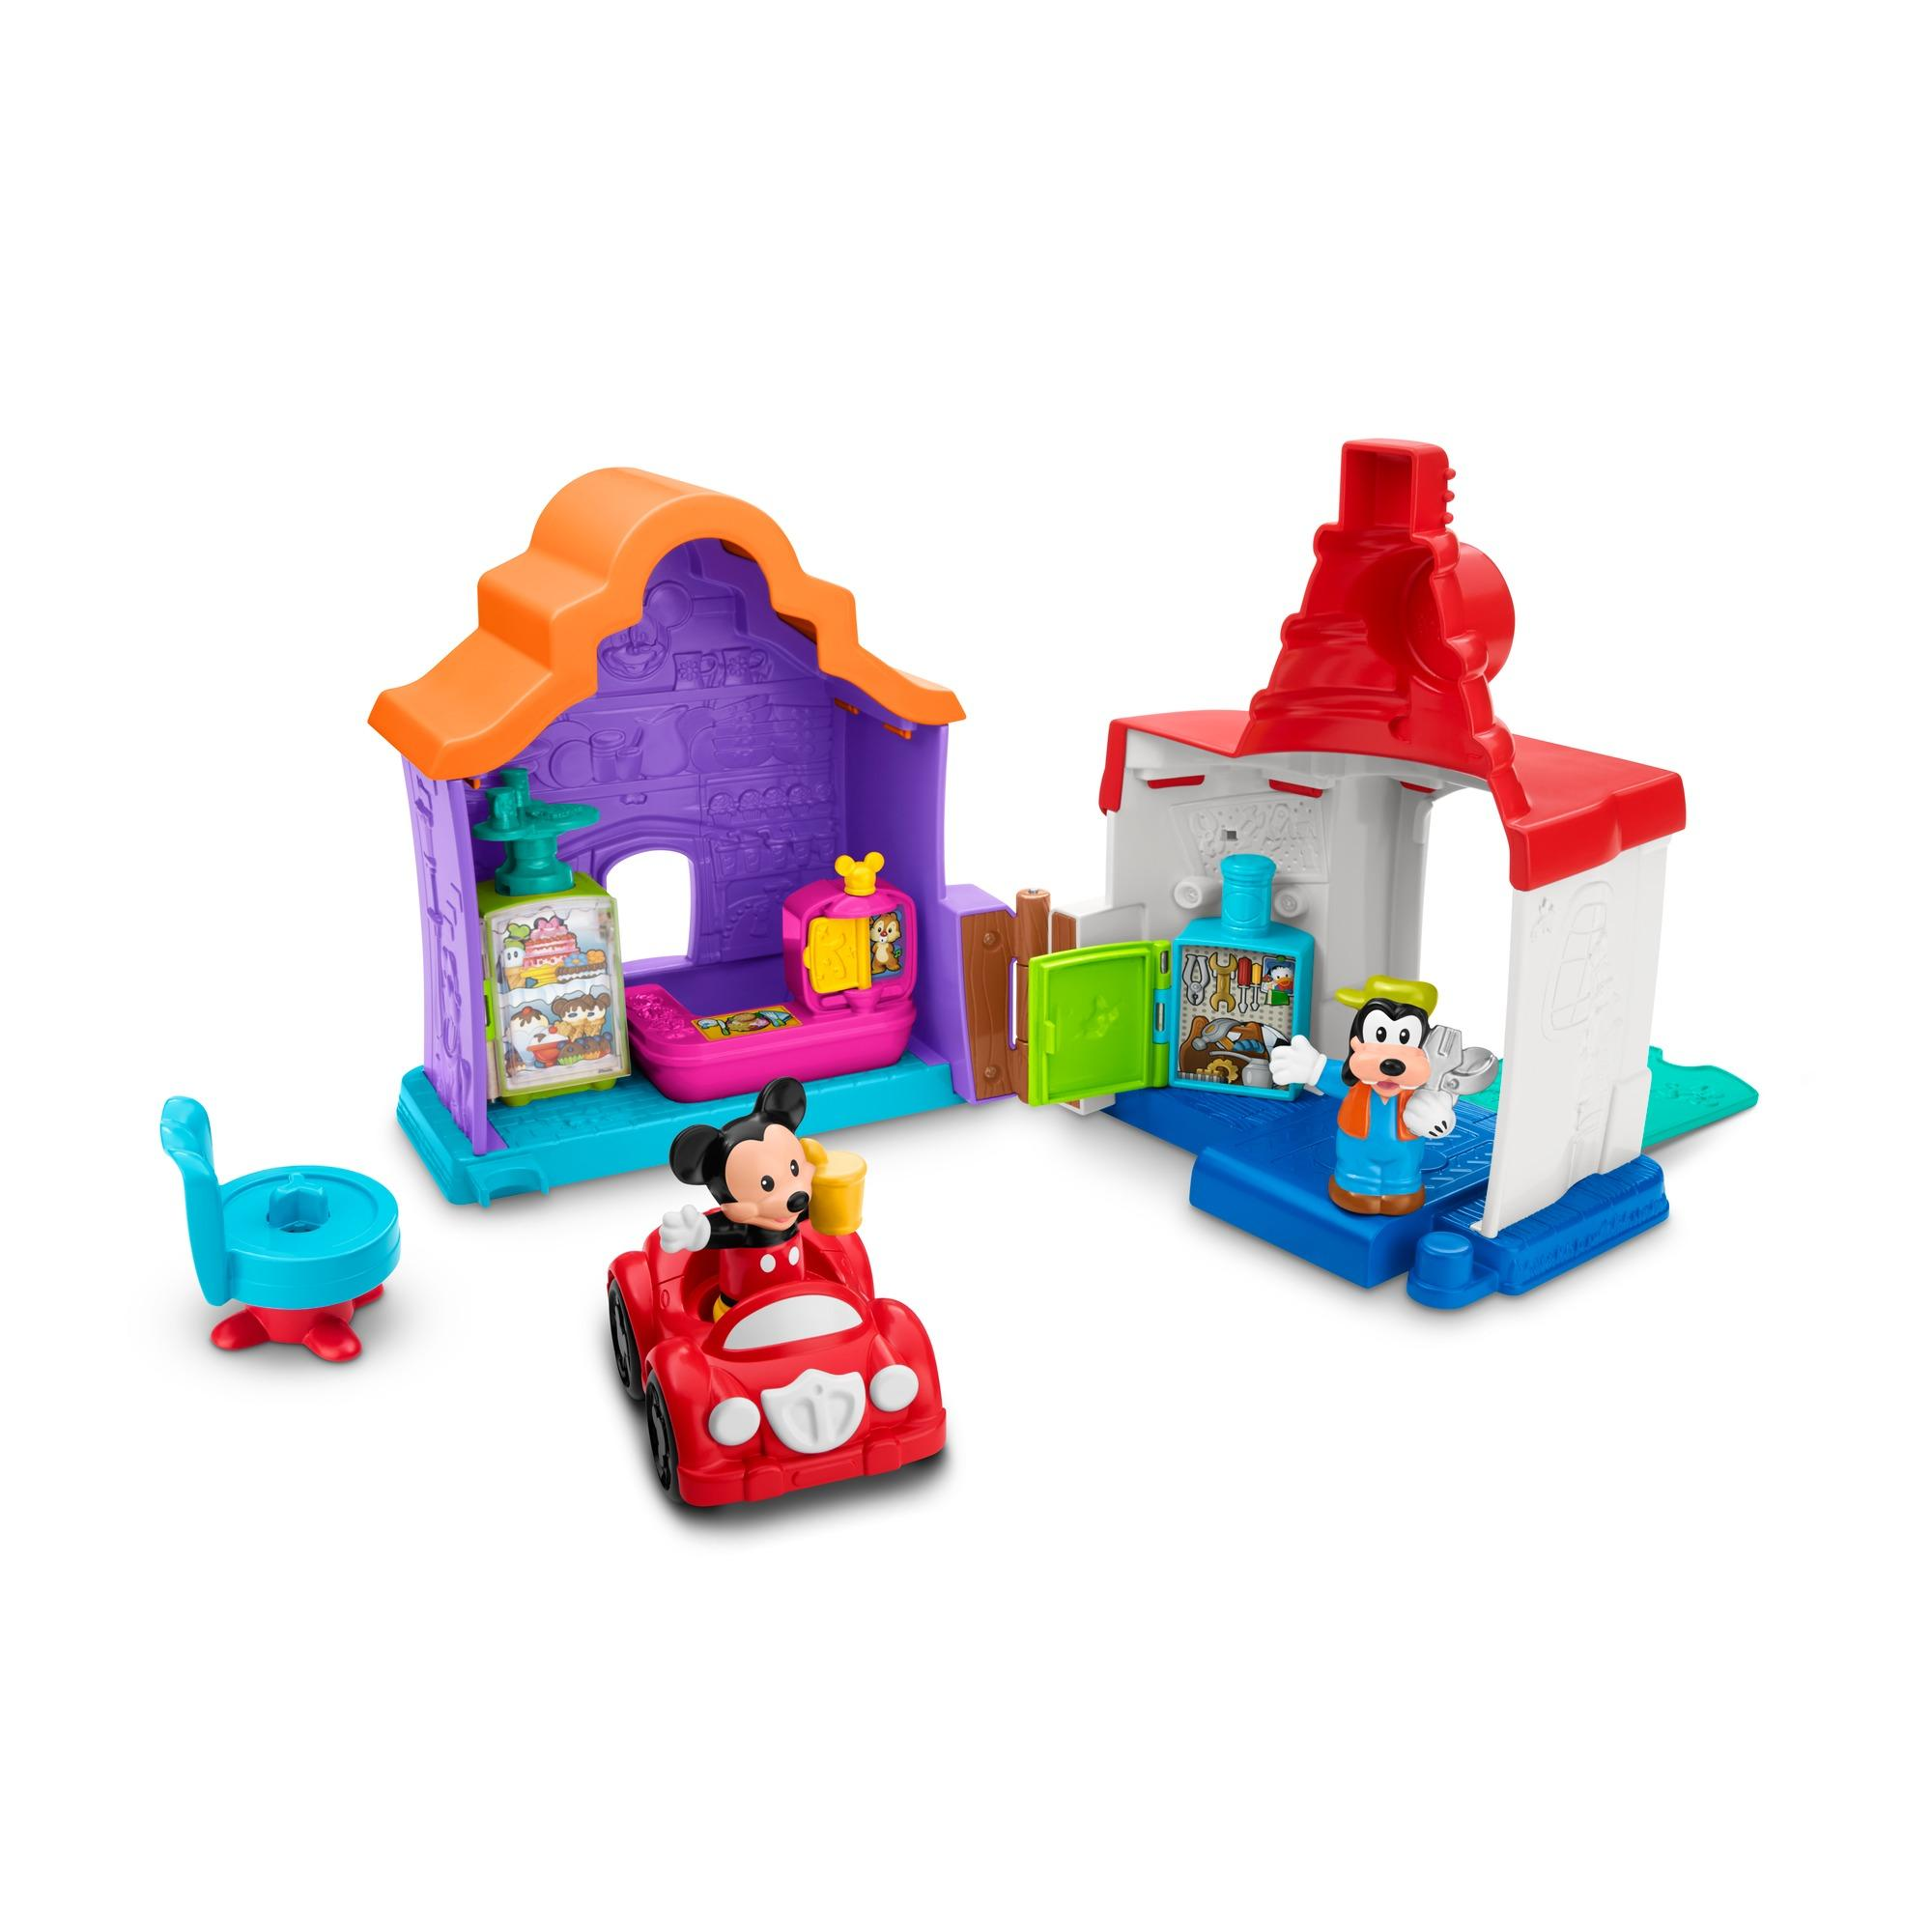 Magic of Disney Mickey & Goofy's Gas and Dine Playset By Little People by FISHER PRICE